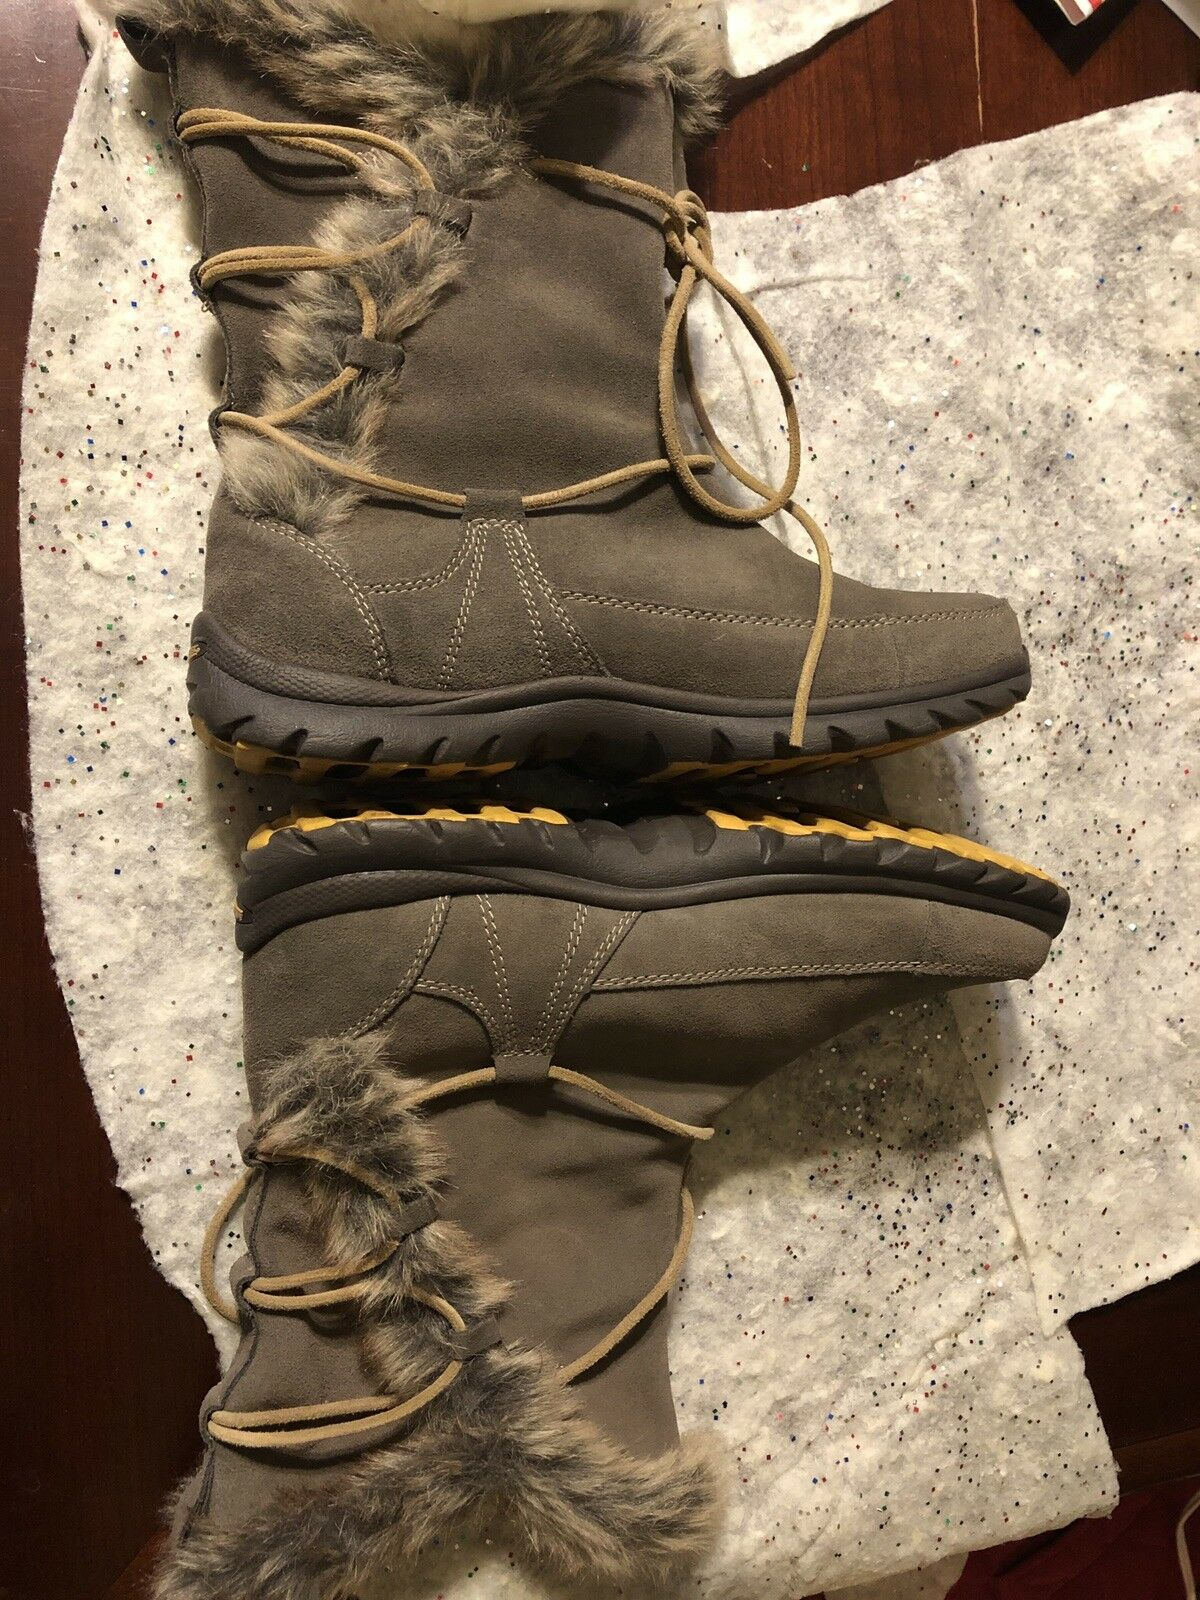 Mountrek-Ellie Lodge shoes-Boots shoes-Boots shoes-Boots Striking Women's Taupe Suze 7.5 New fced30